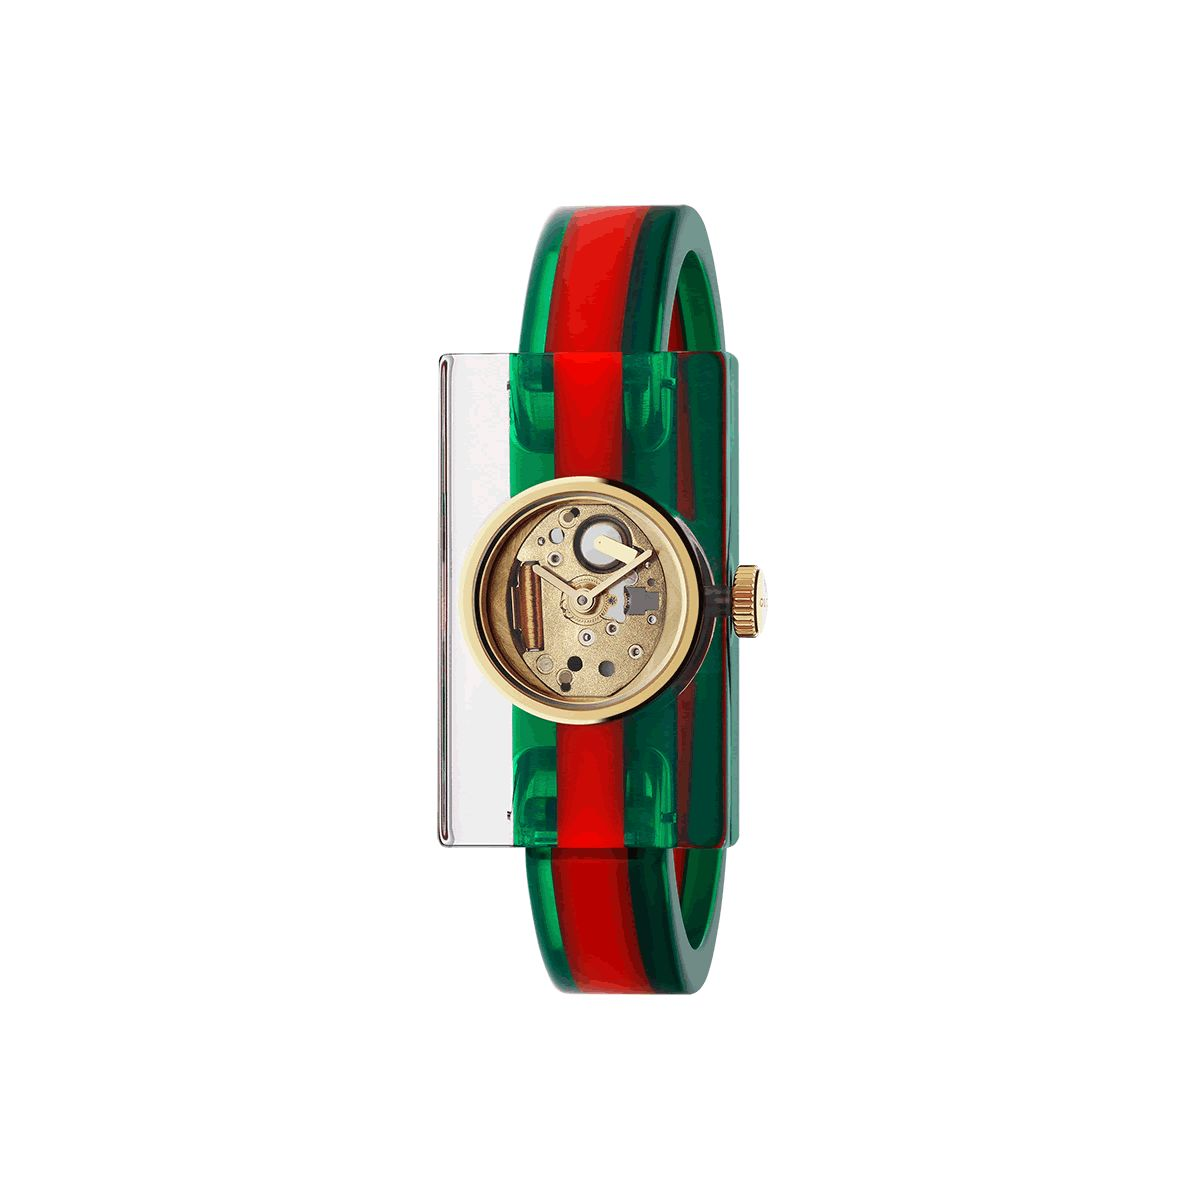 bd989a0cda7 Gucci G-Timeless Watches - Macy s